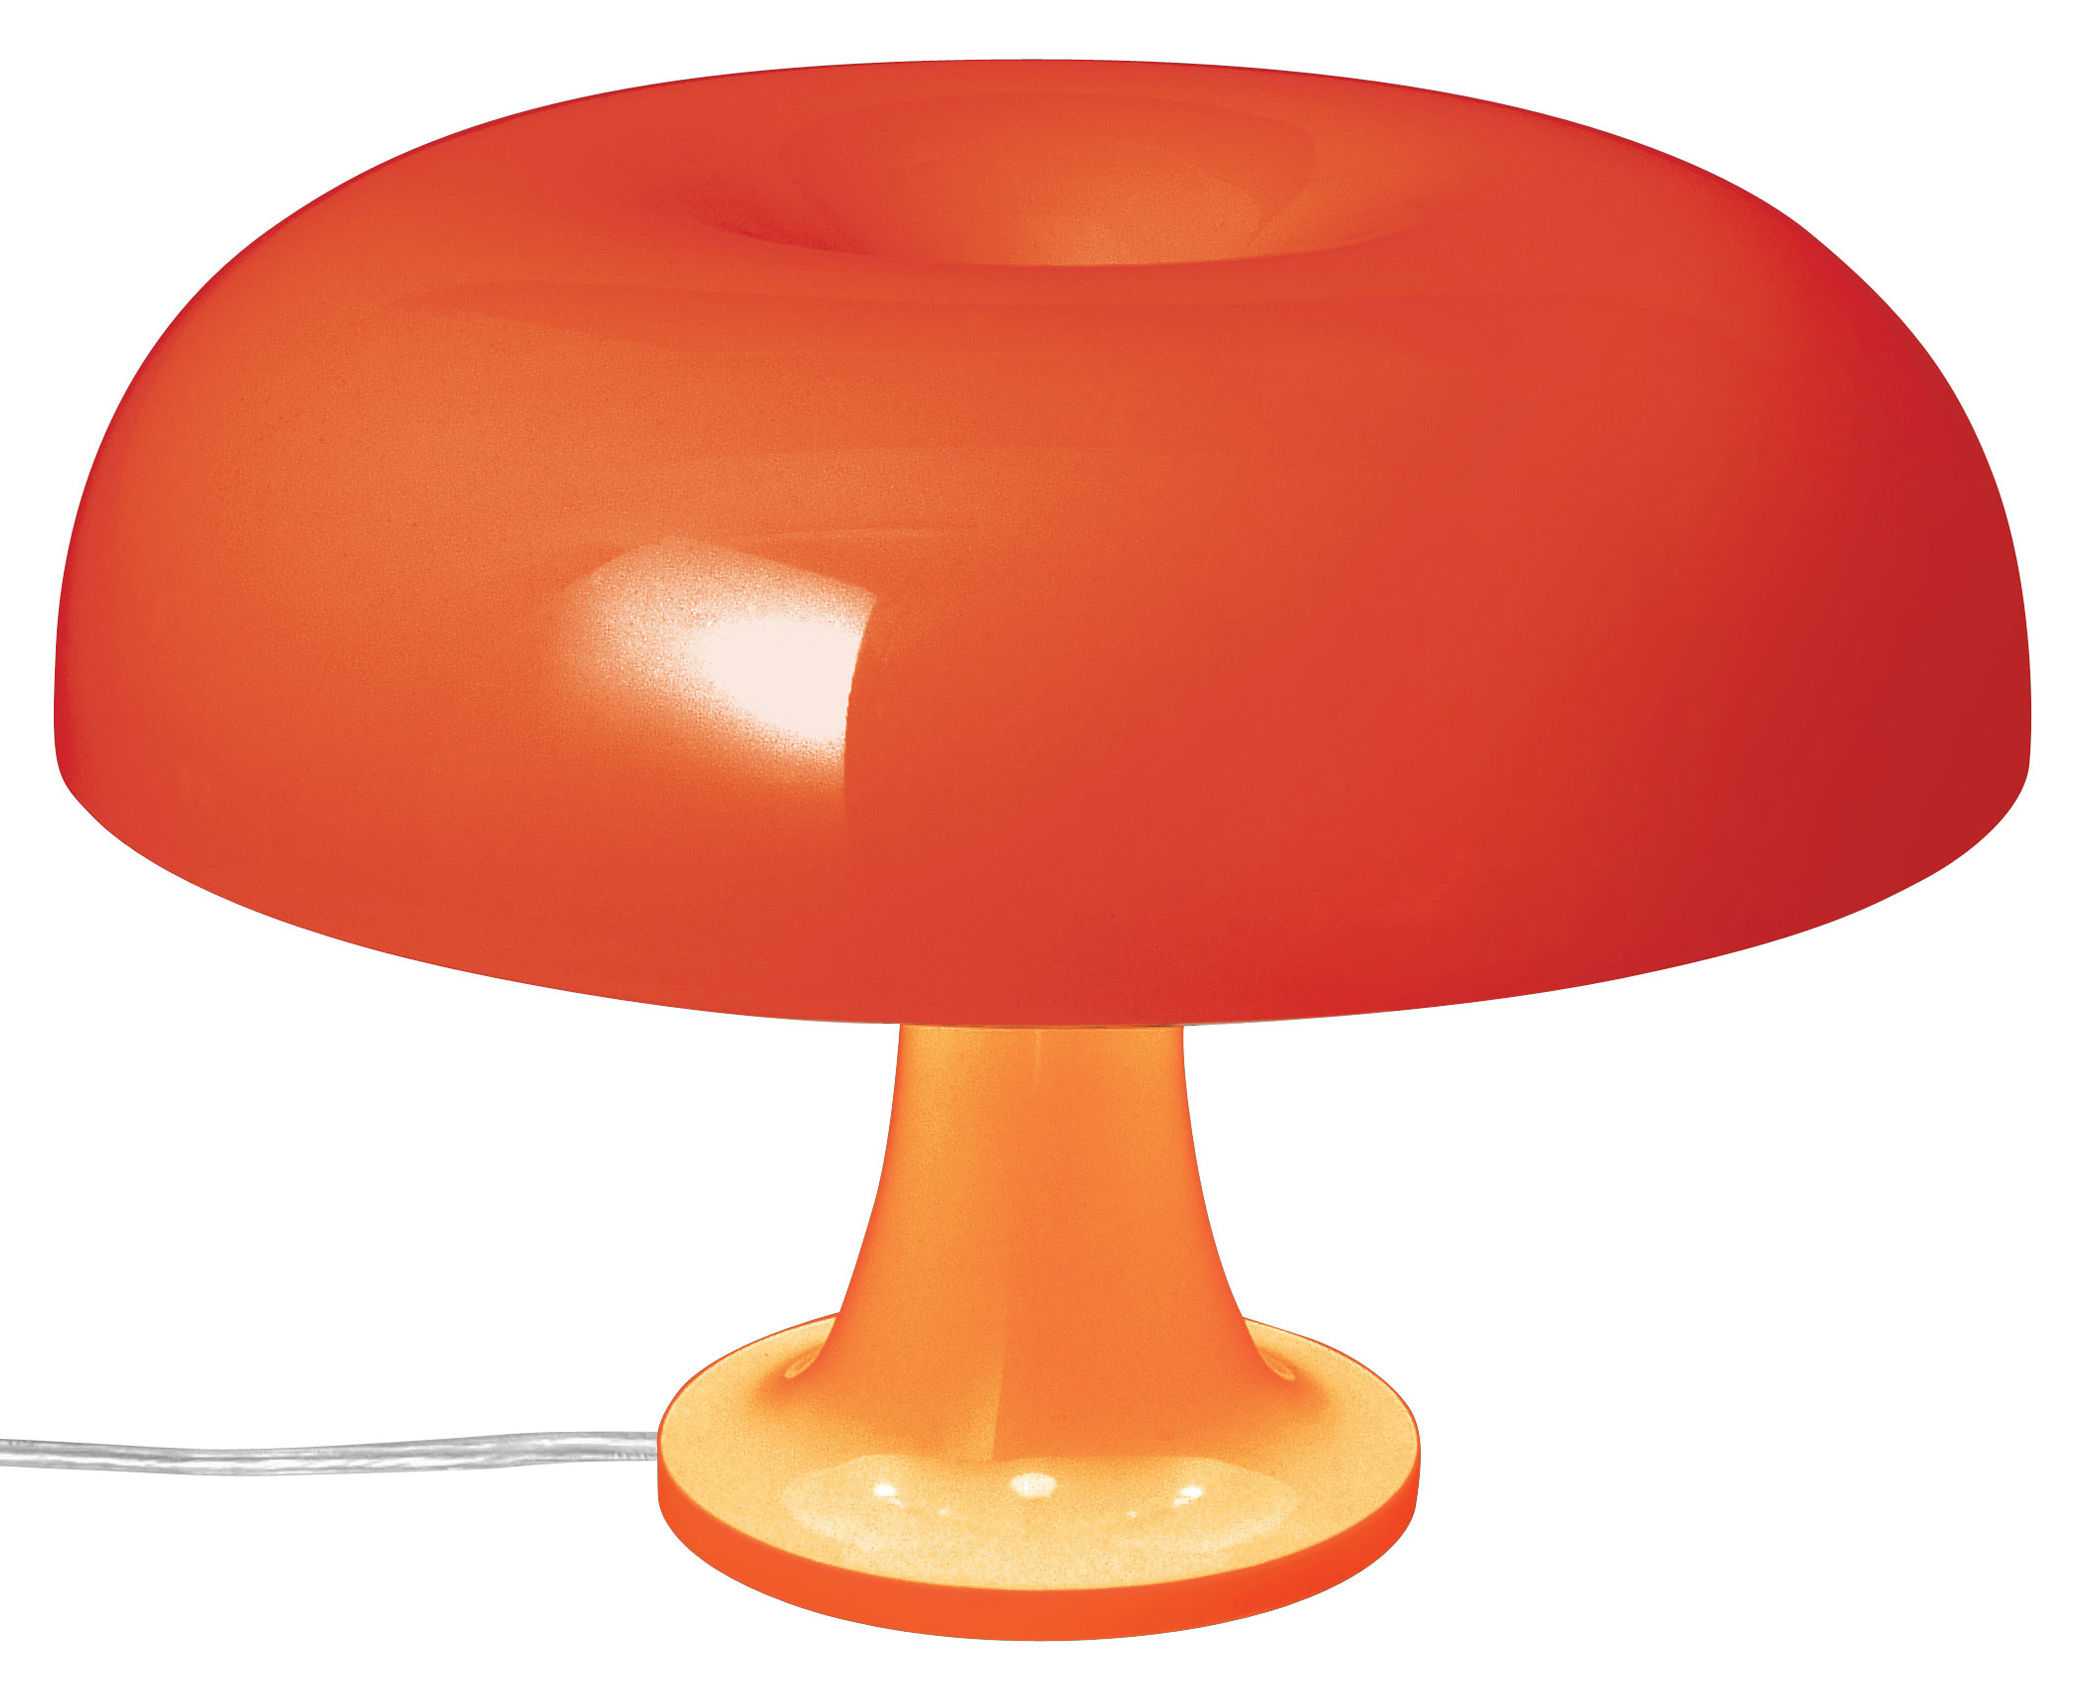 Lighting - Table Lamps - Nessino Table lamp by Artemide - Solid orange - Polycarbonate